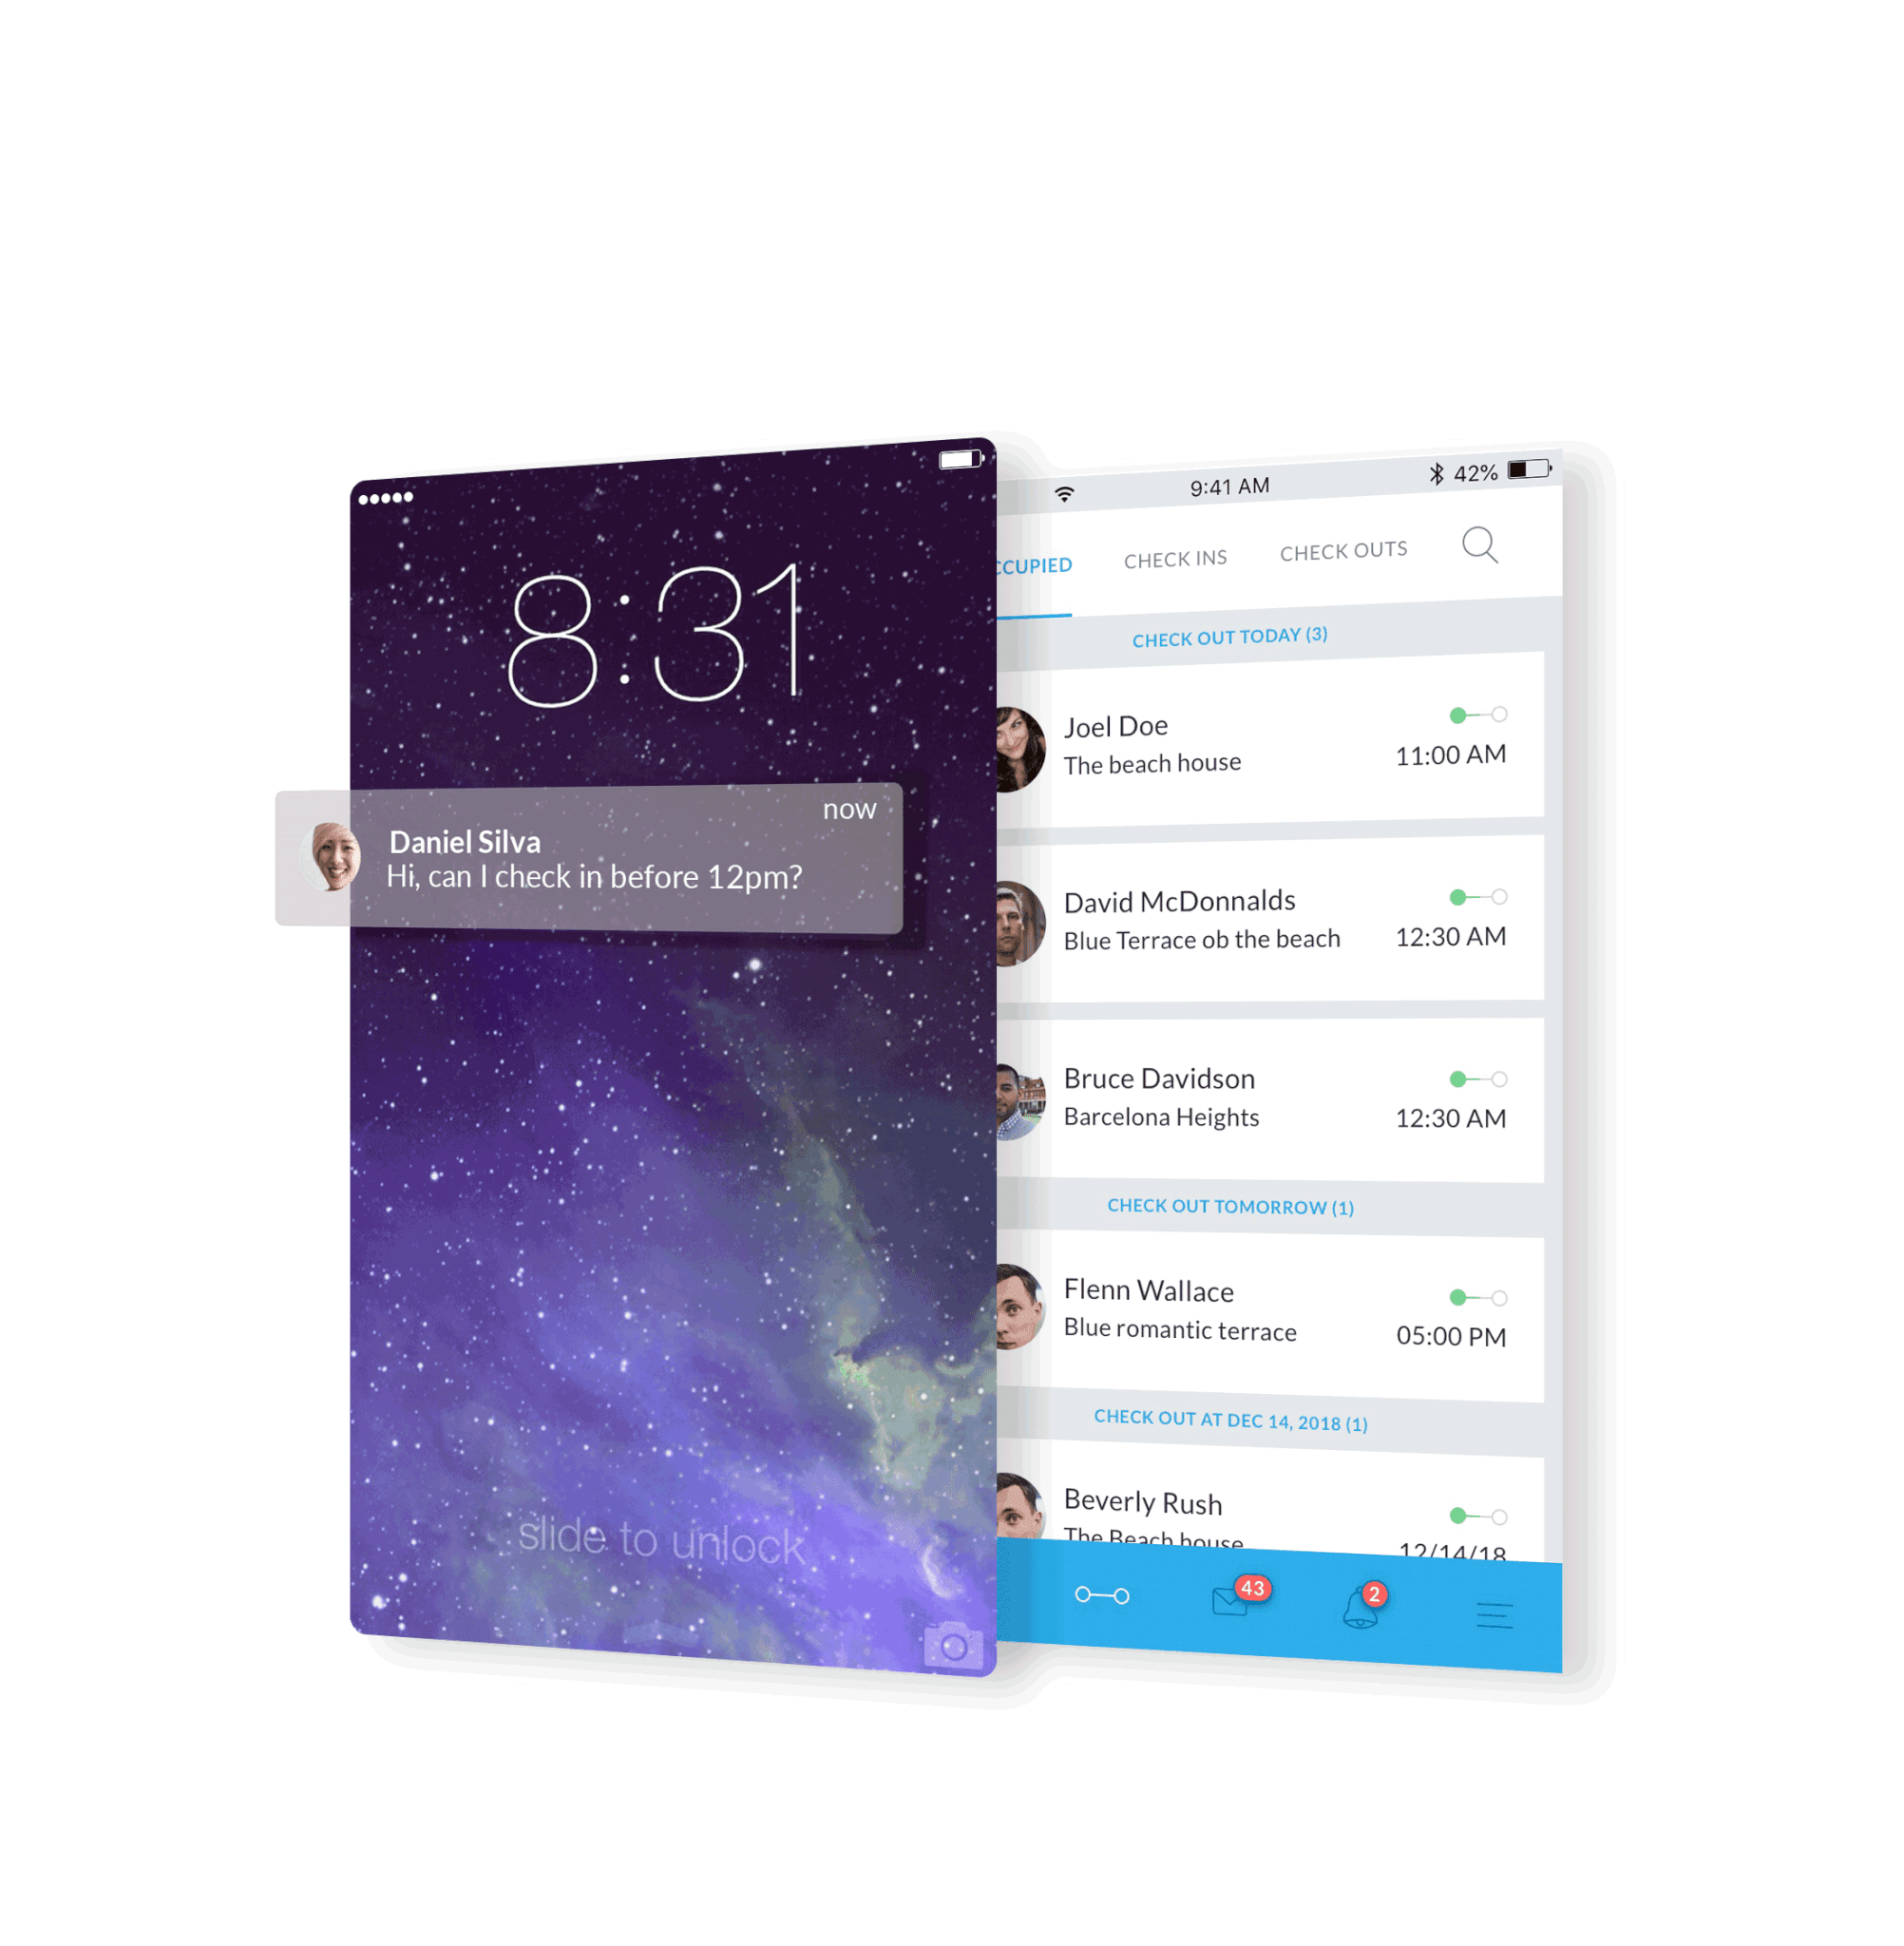 Guesty Mobile inbox